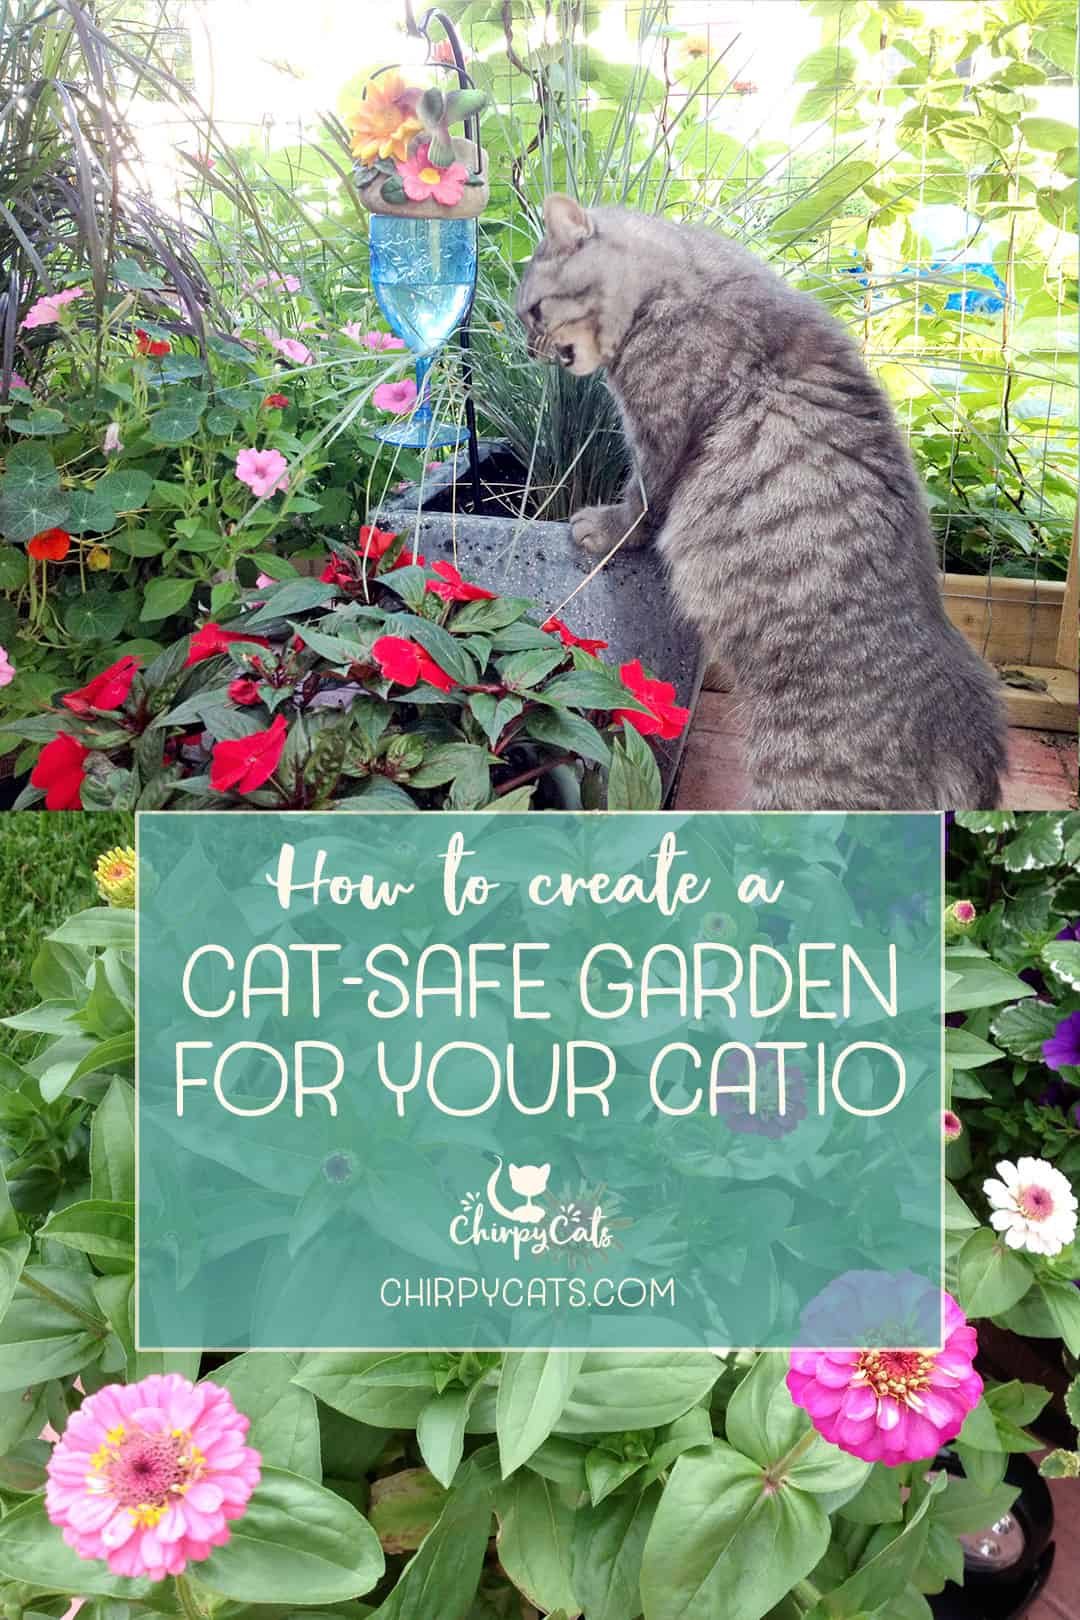 grey tabby cay snacking on blue oat grass in a catio garden